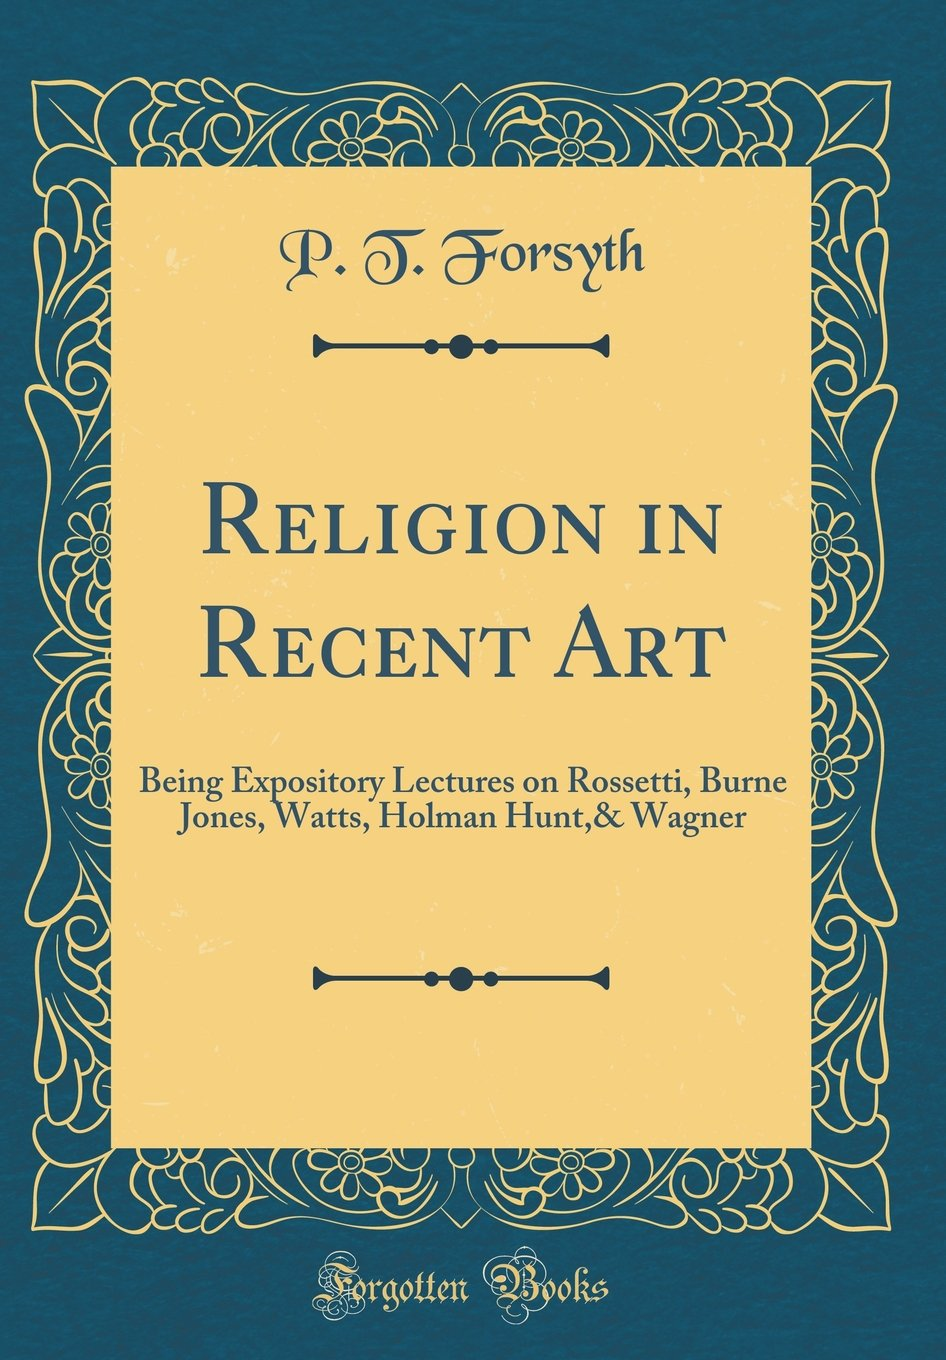 Religion in Recent Art: Being Expository Lectures on Rossetti, Burne Jones, Watts, Holman Hunt,& Wagner (Classic Reprint) PDF